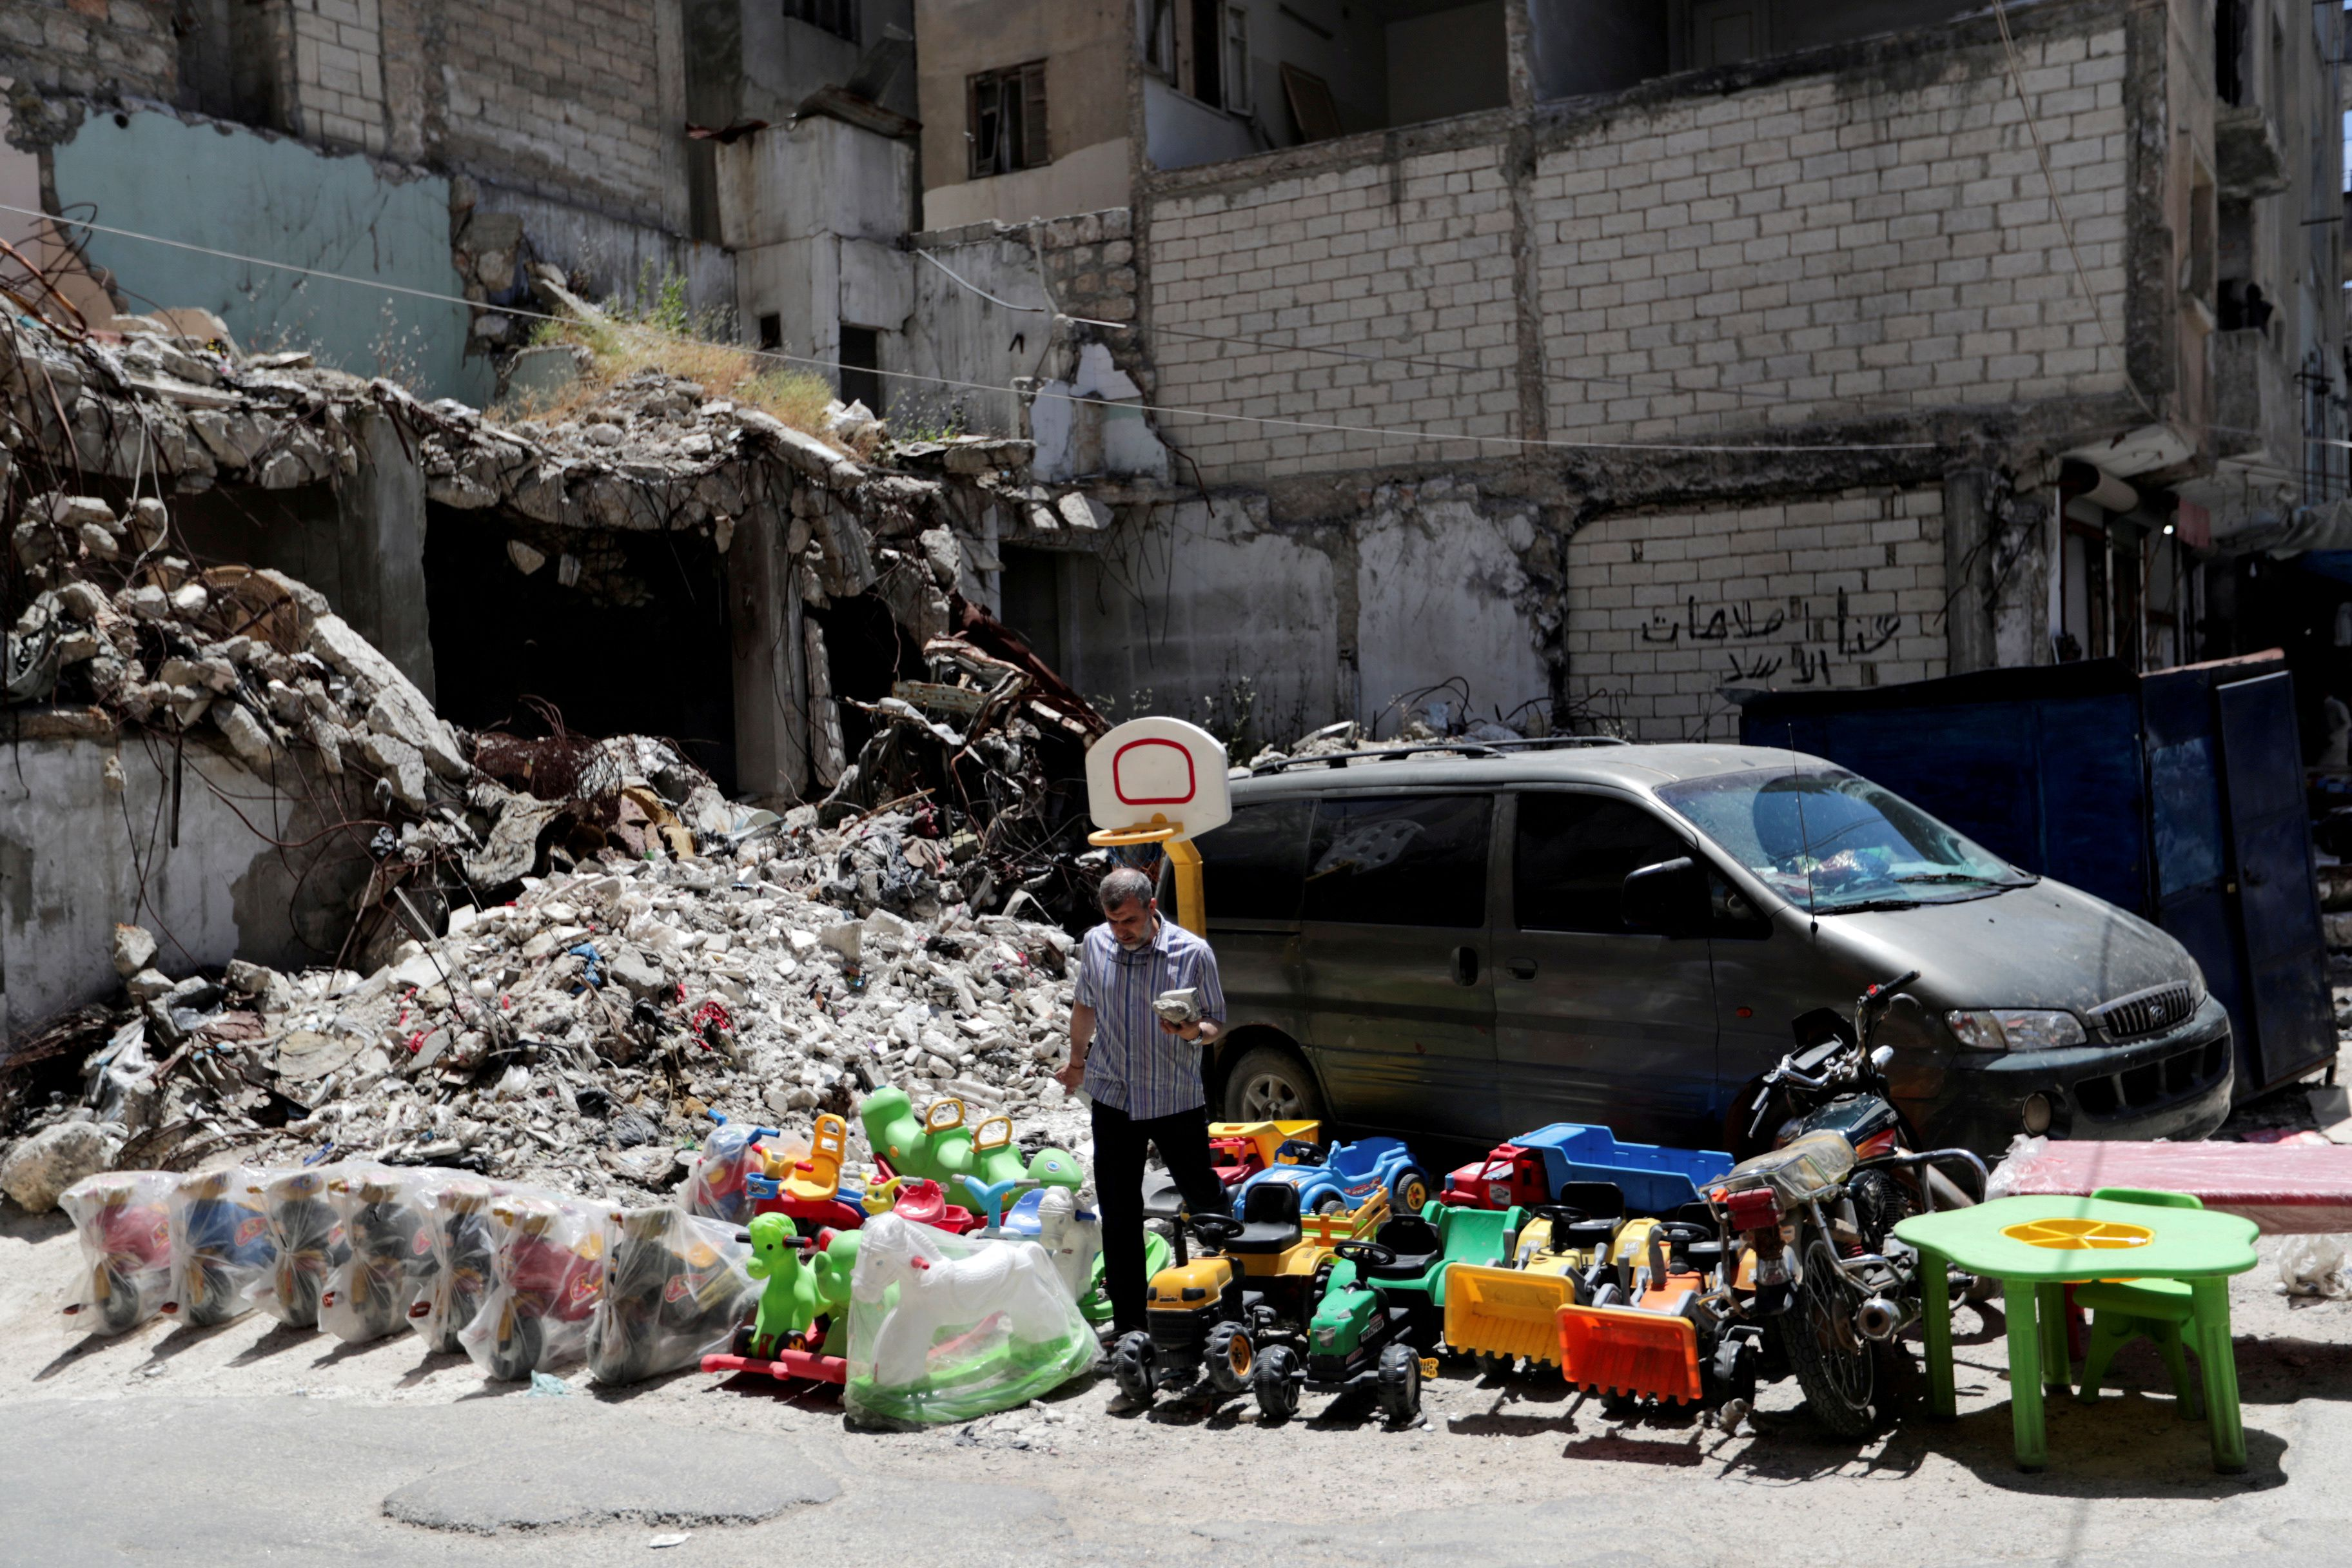 More than 500 civilians have been killed in siege of last Syrian rebel bastion, rights groups say